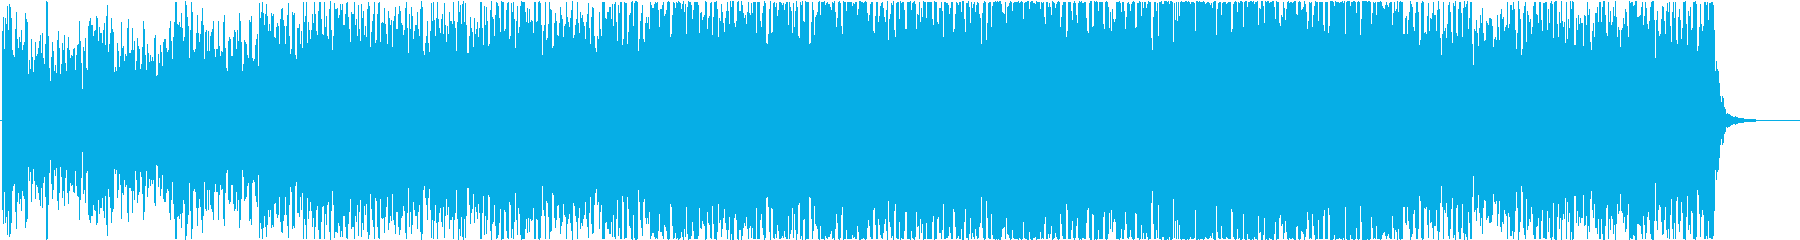 Epic, movie, trailer's reproduced waveform